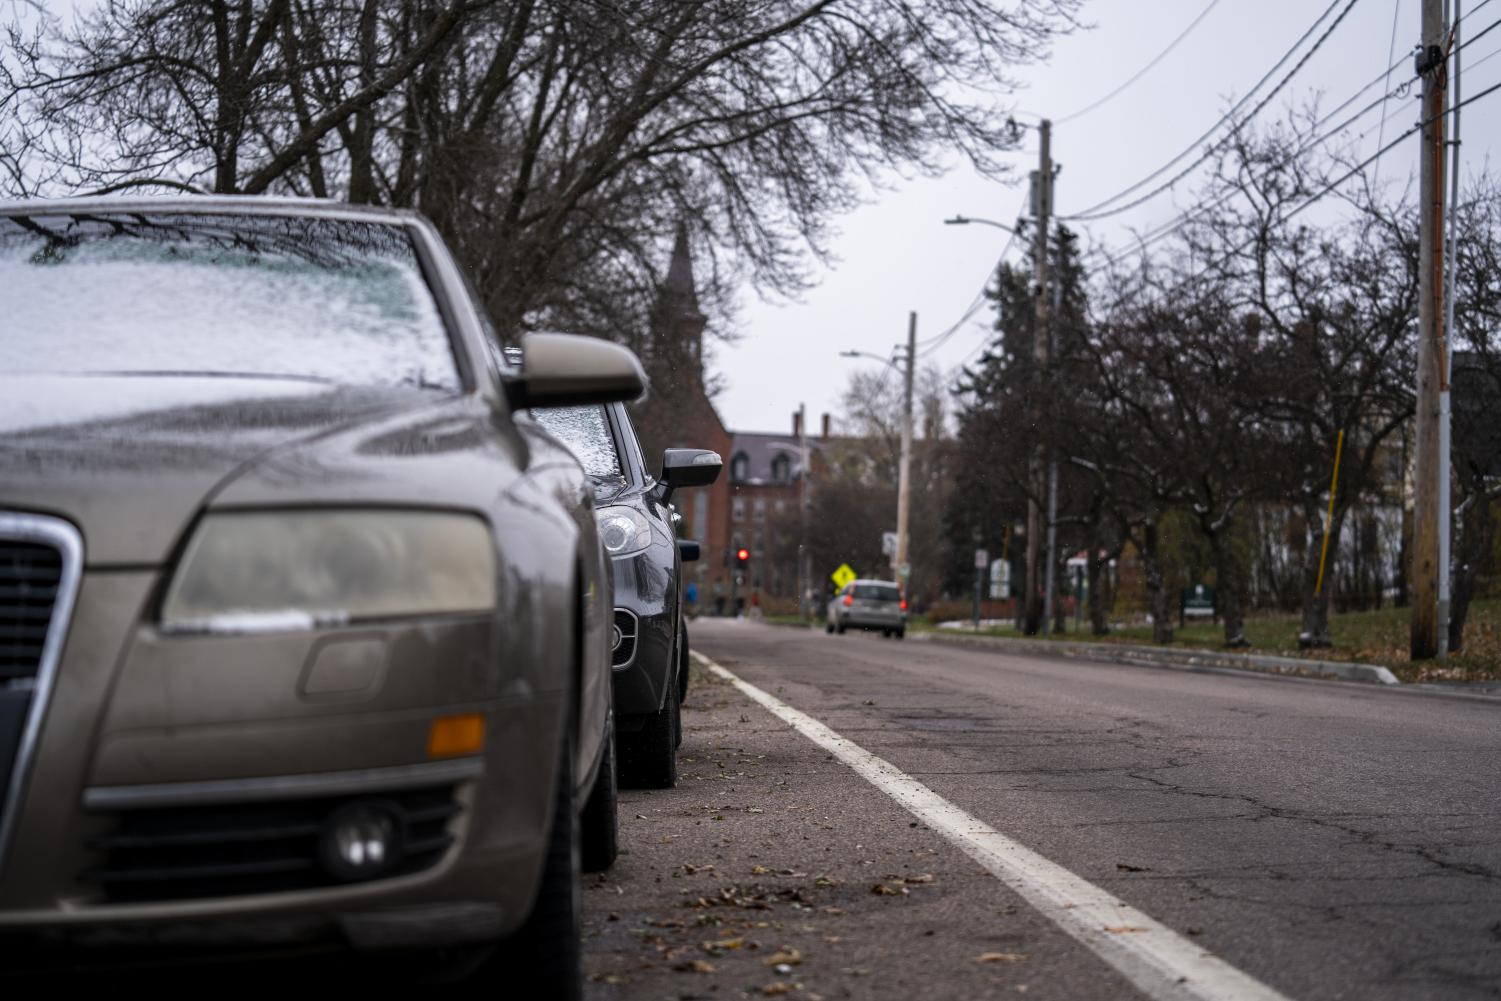 The cars seen here parked on Burlington's College street will have to move before 10 p.m. tonight. A parking ban is in effect from Nov. 11 at 10 p.m. until Nov. 12 at 7 a.m. throughout the city of Burlington.